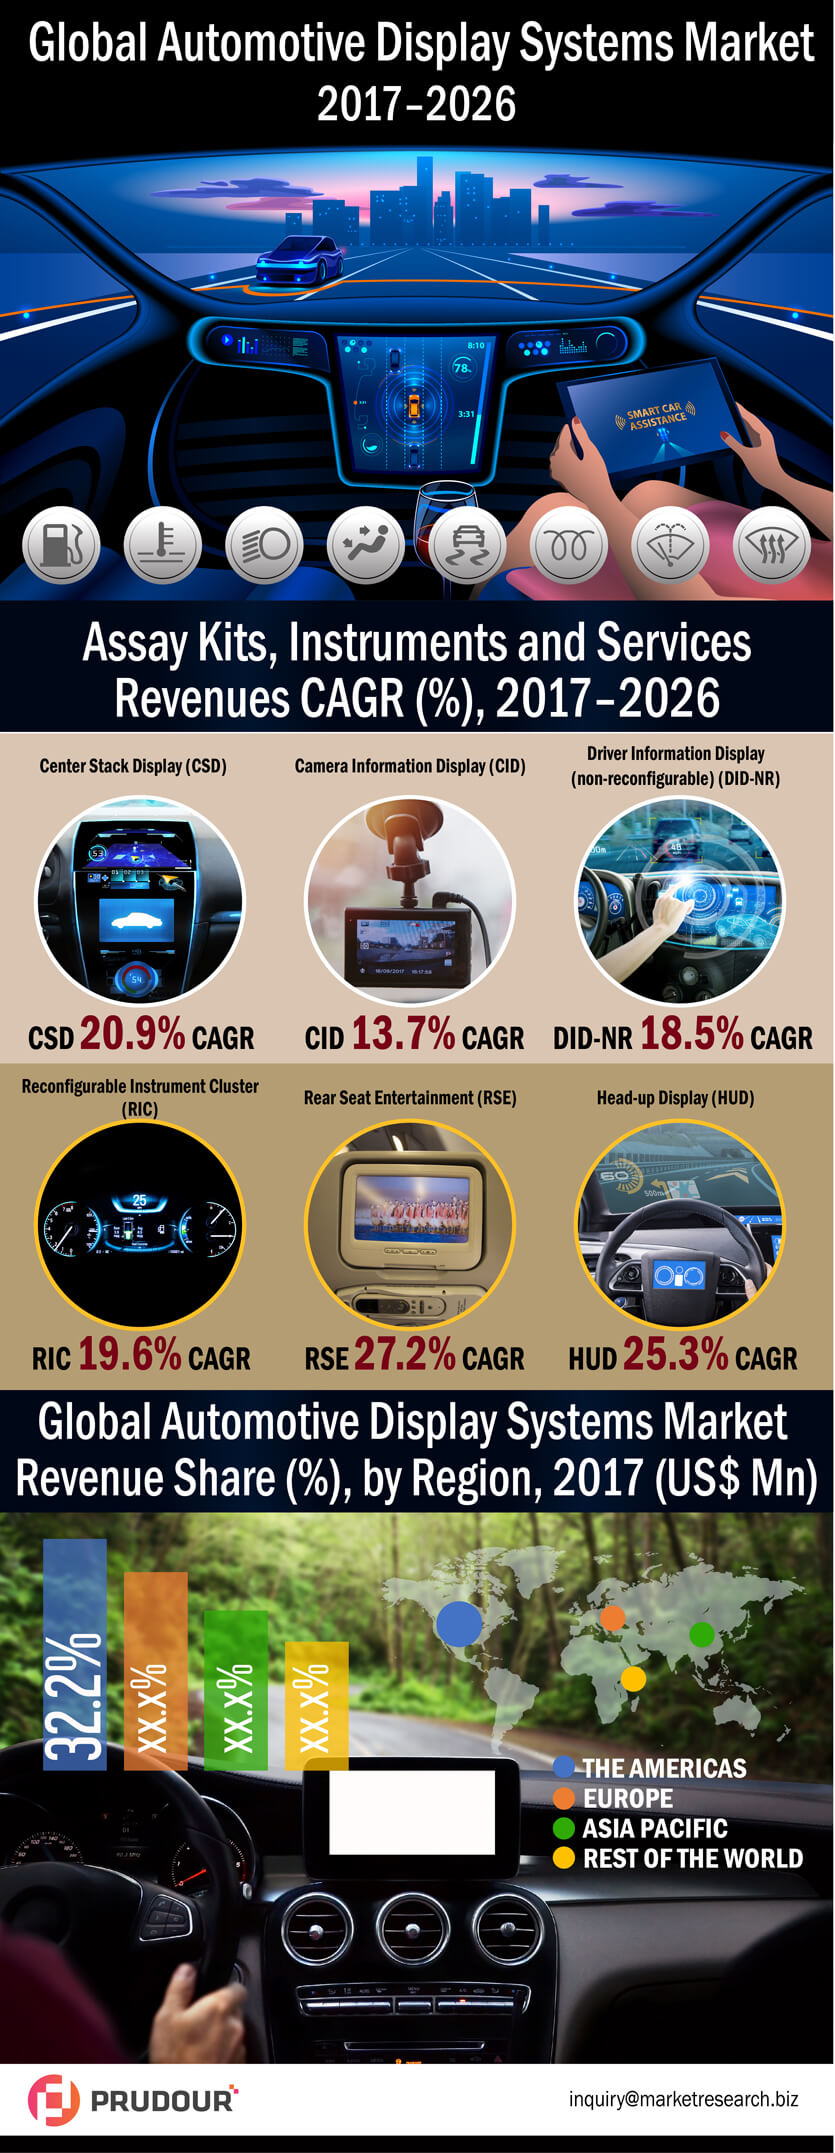 2026 US$ 1,01,427.2 Mn: Global Automotive Display System Market is expected to reach US$ 1,01,427.2 Mn in 2026